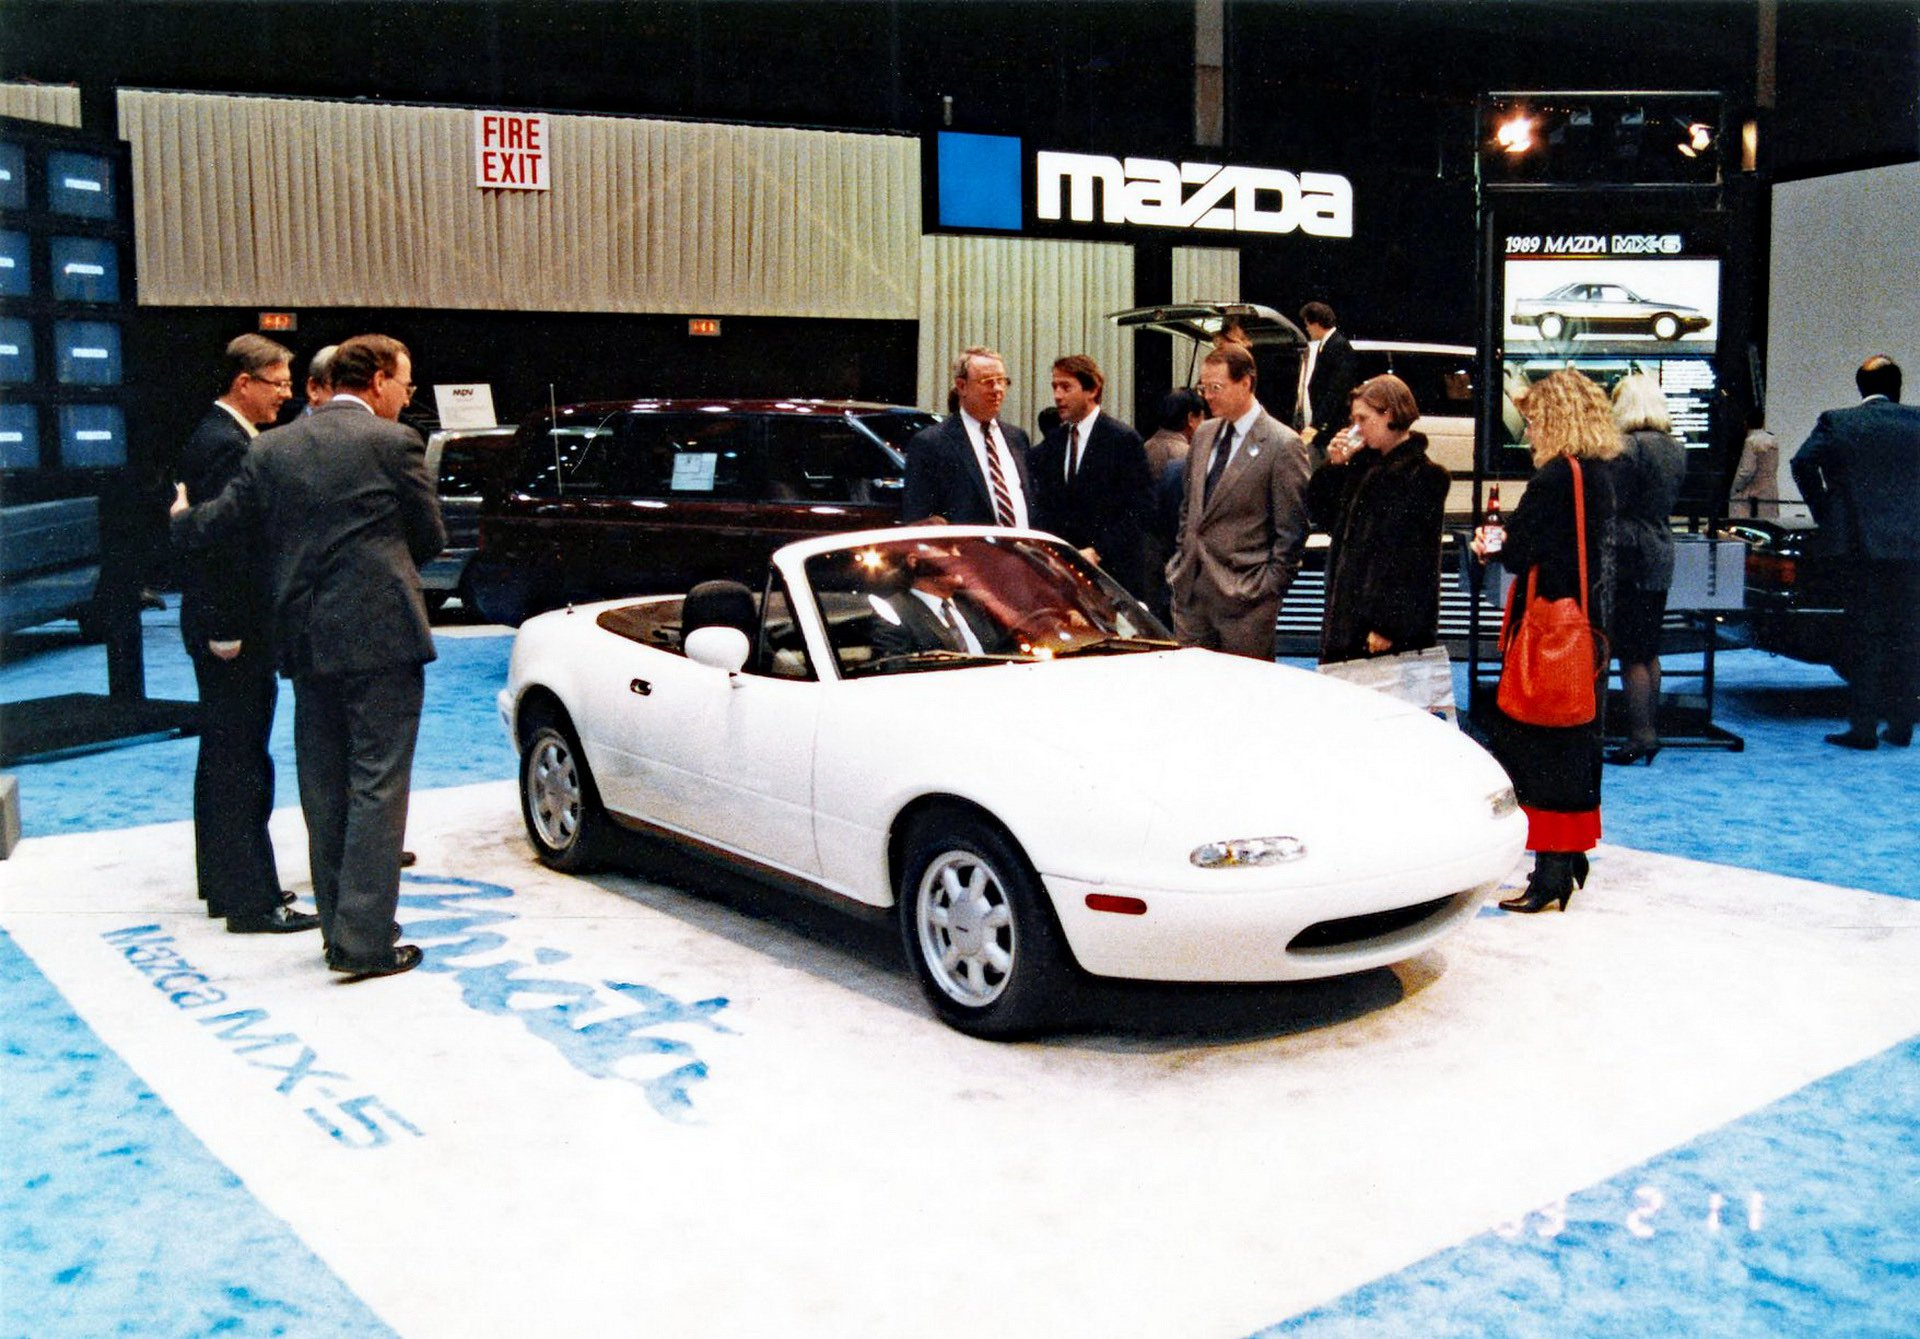 d6e18f0f-chicago-1989-mx-5-4.jpg